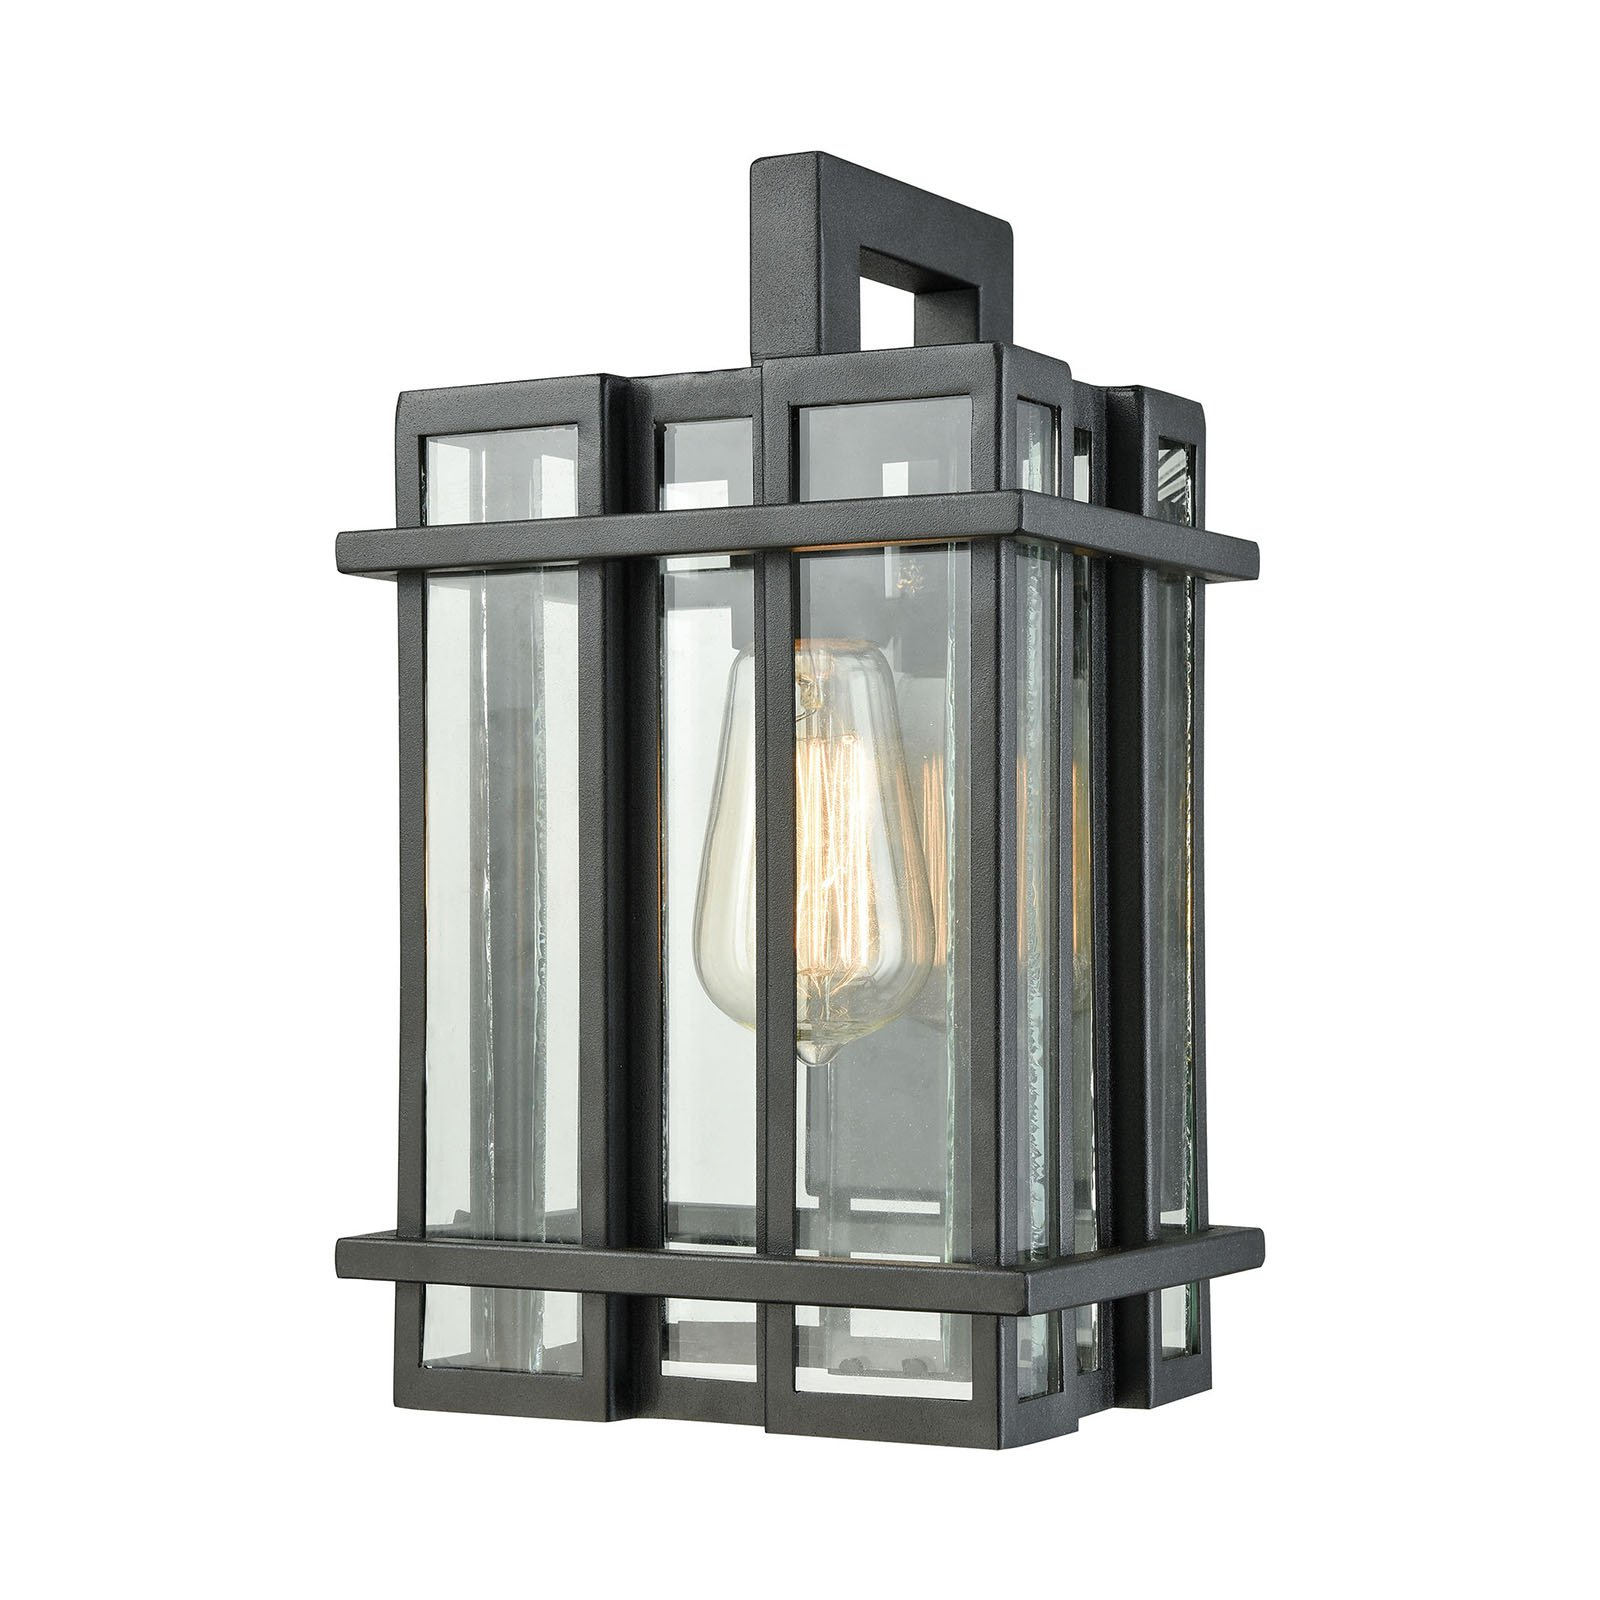 ELK Lighting Glass Tower 1 Light Outdoor Wall Sconce